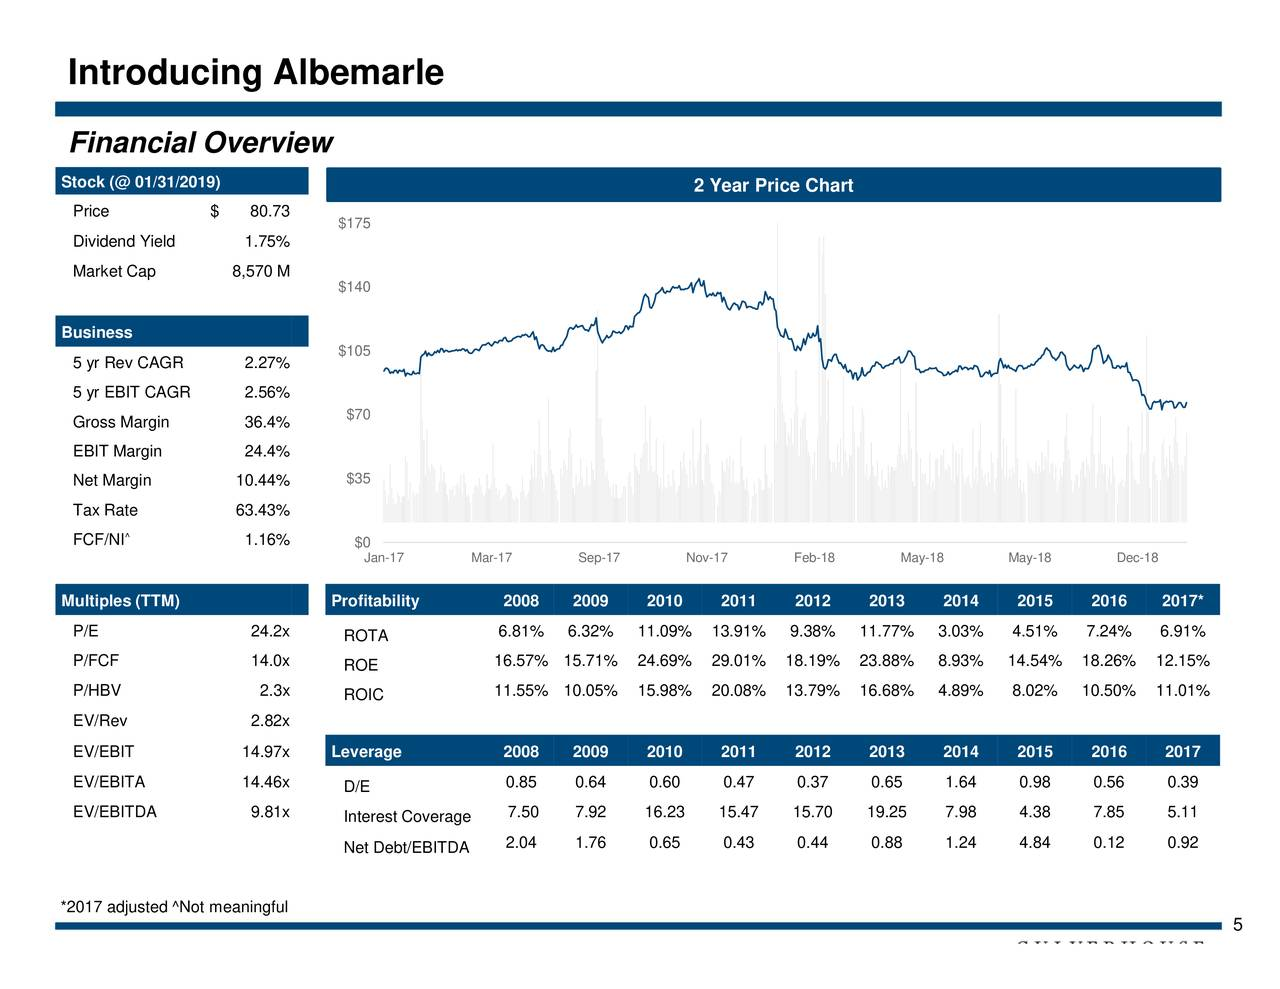 Albemarle: Focused On Accretive Lithium Expansion